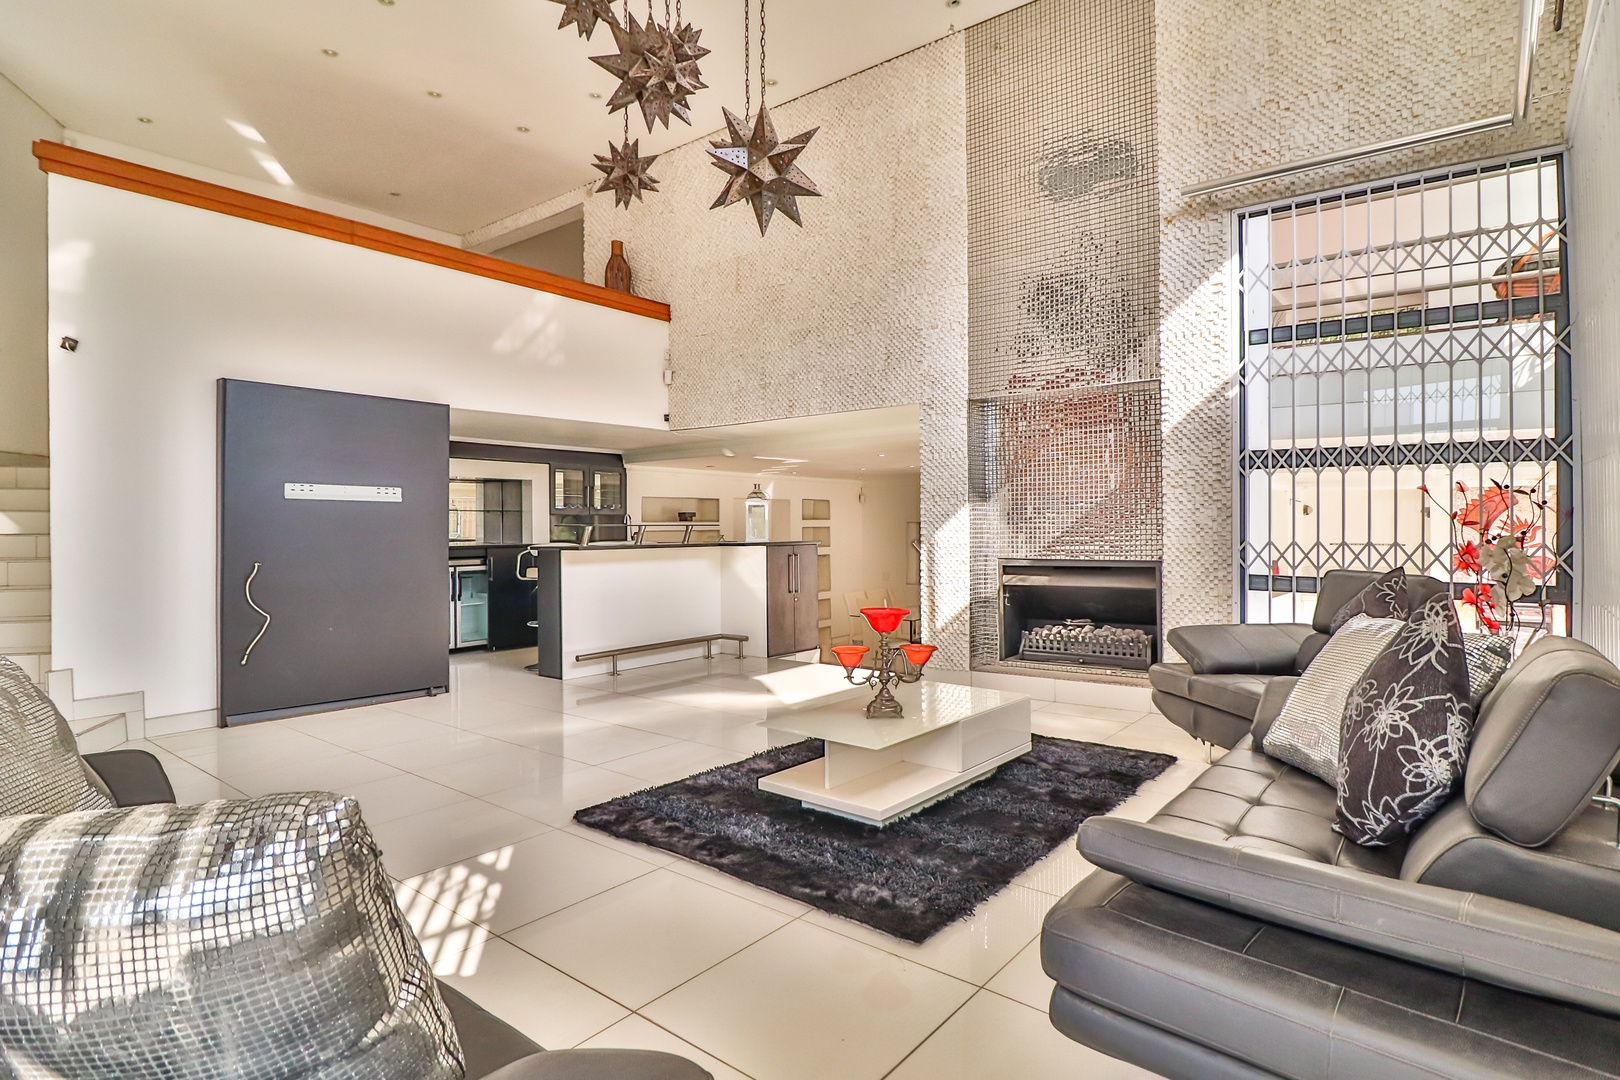 House in Kosmos Village - Integrated and open plan lounge and built-in bar area